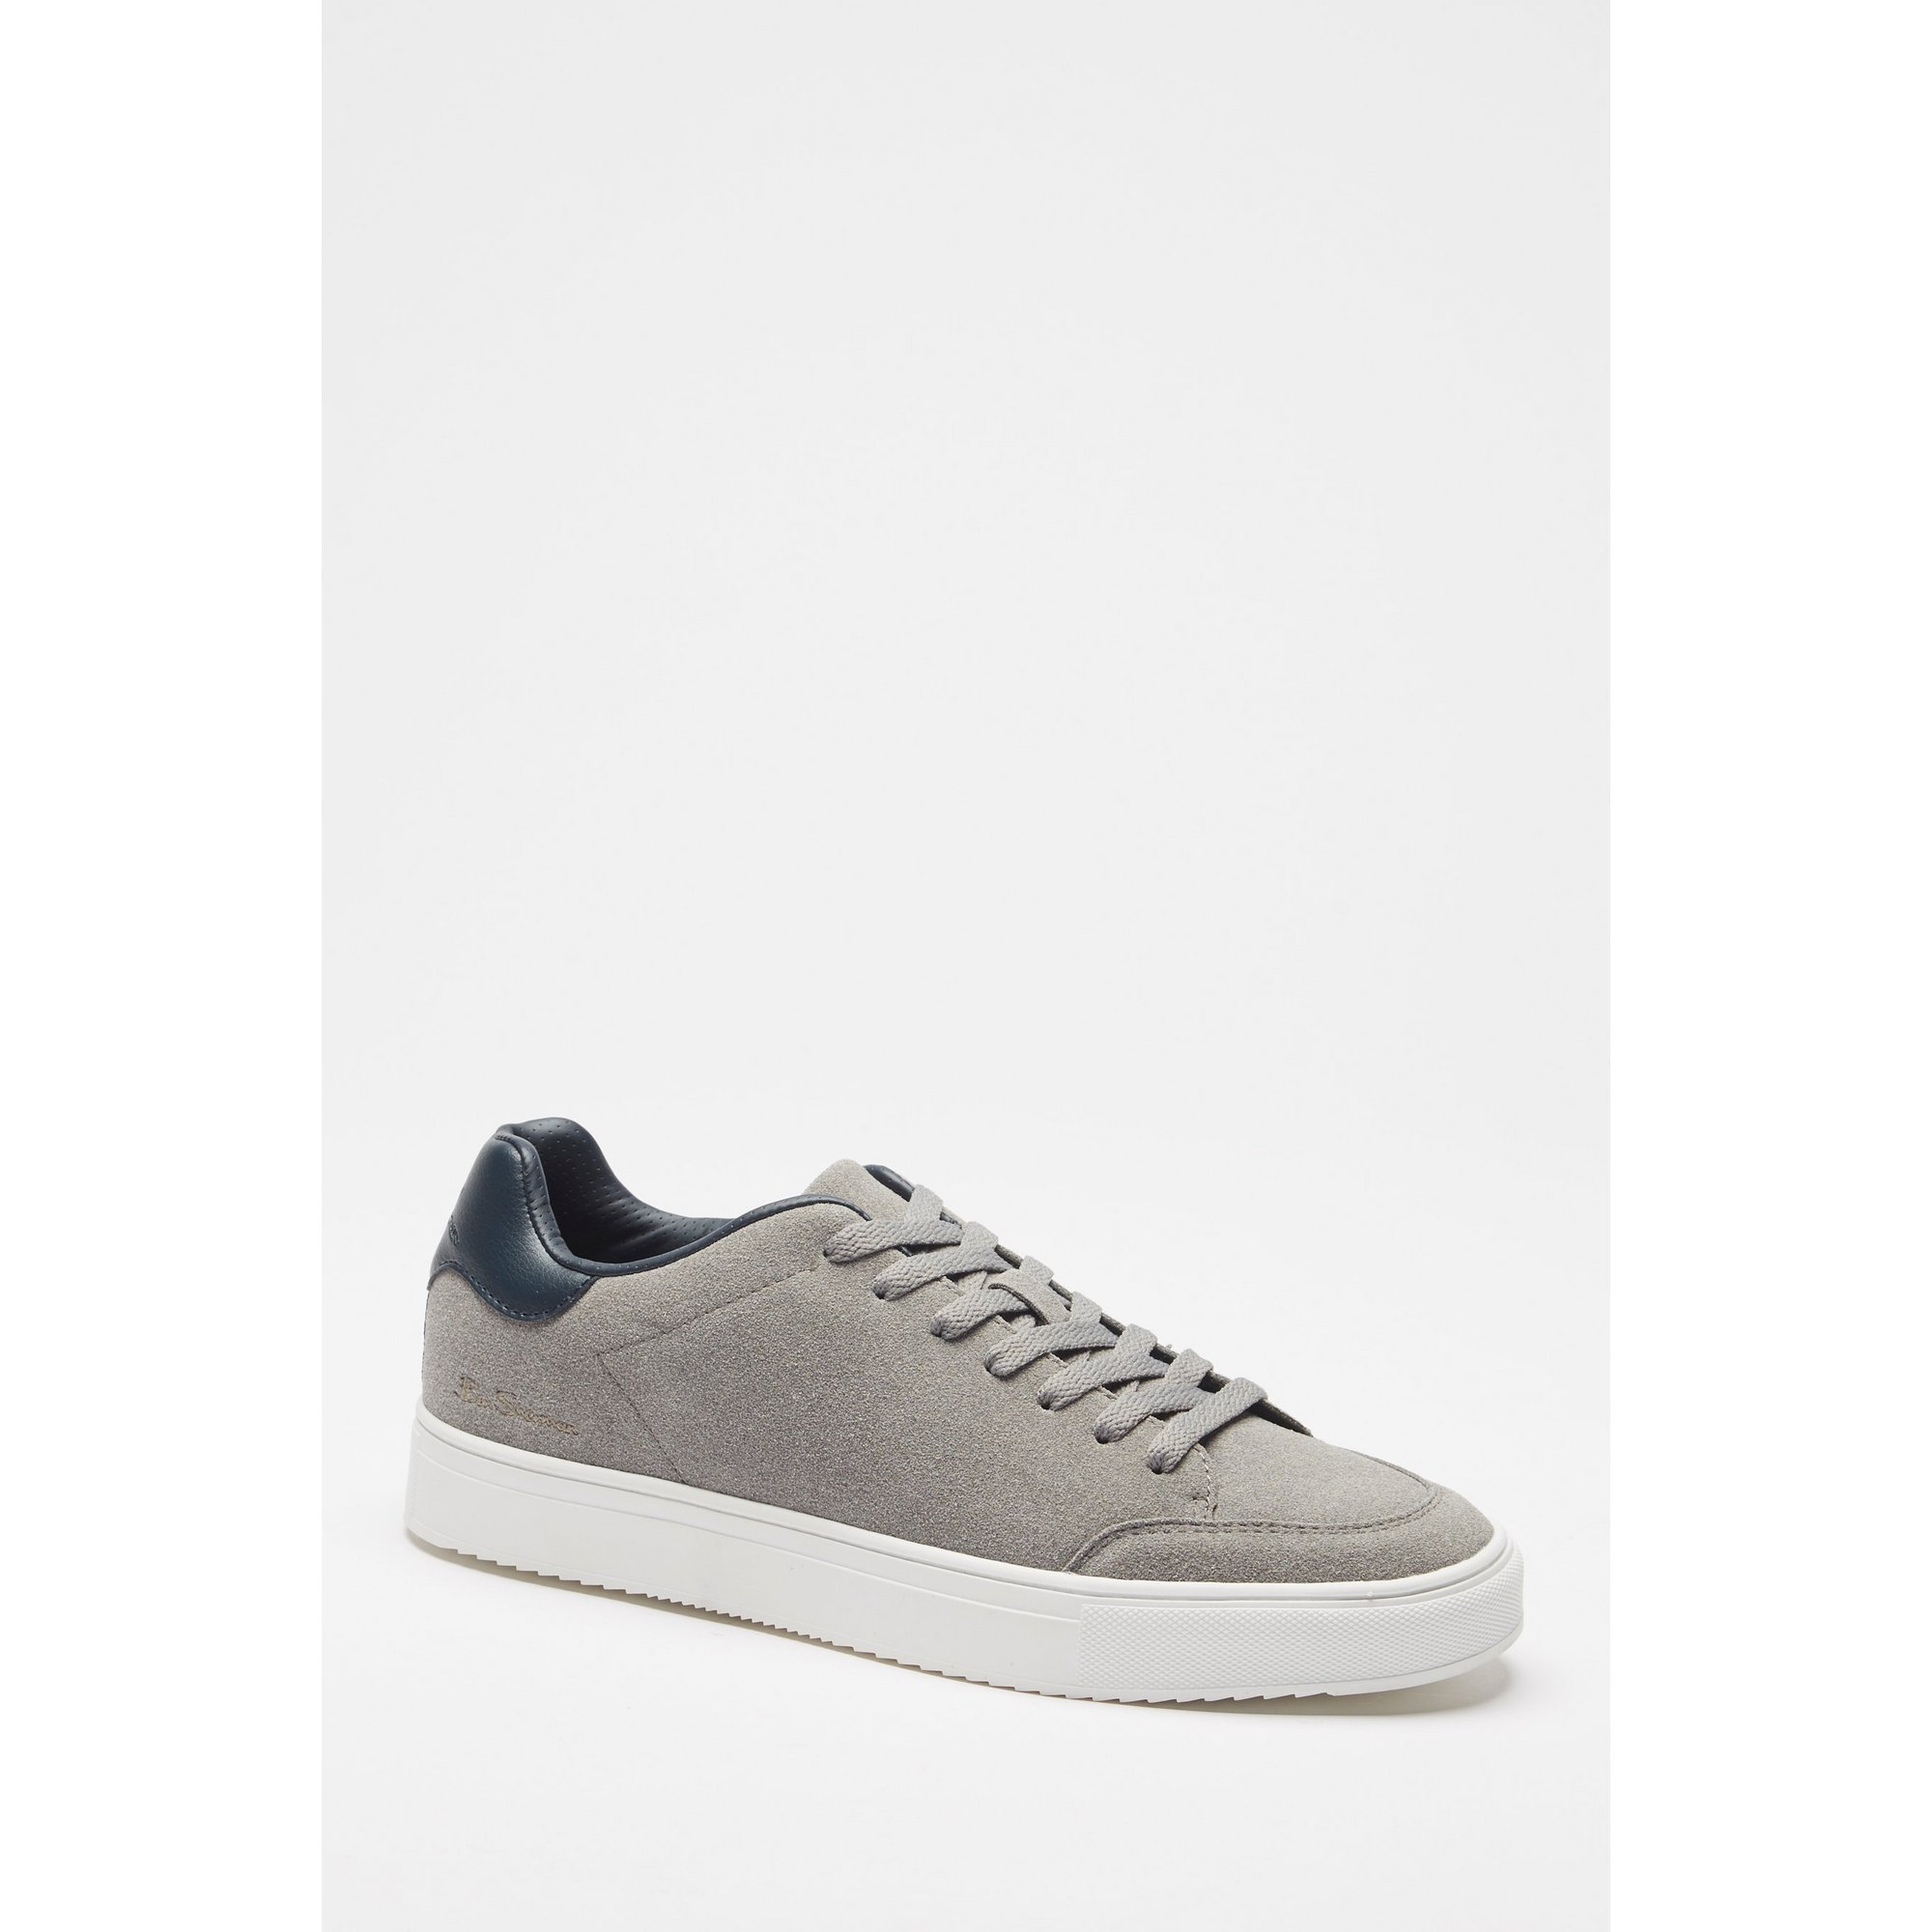 Image of Ben Sherman Alec Grey Trainers